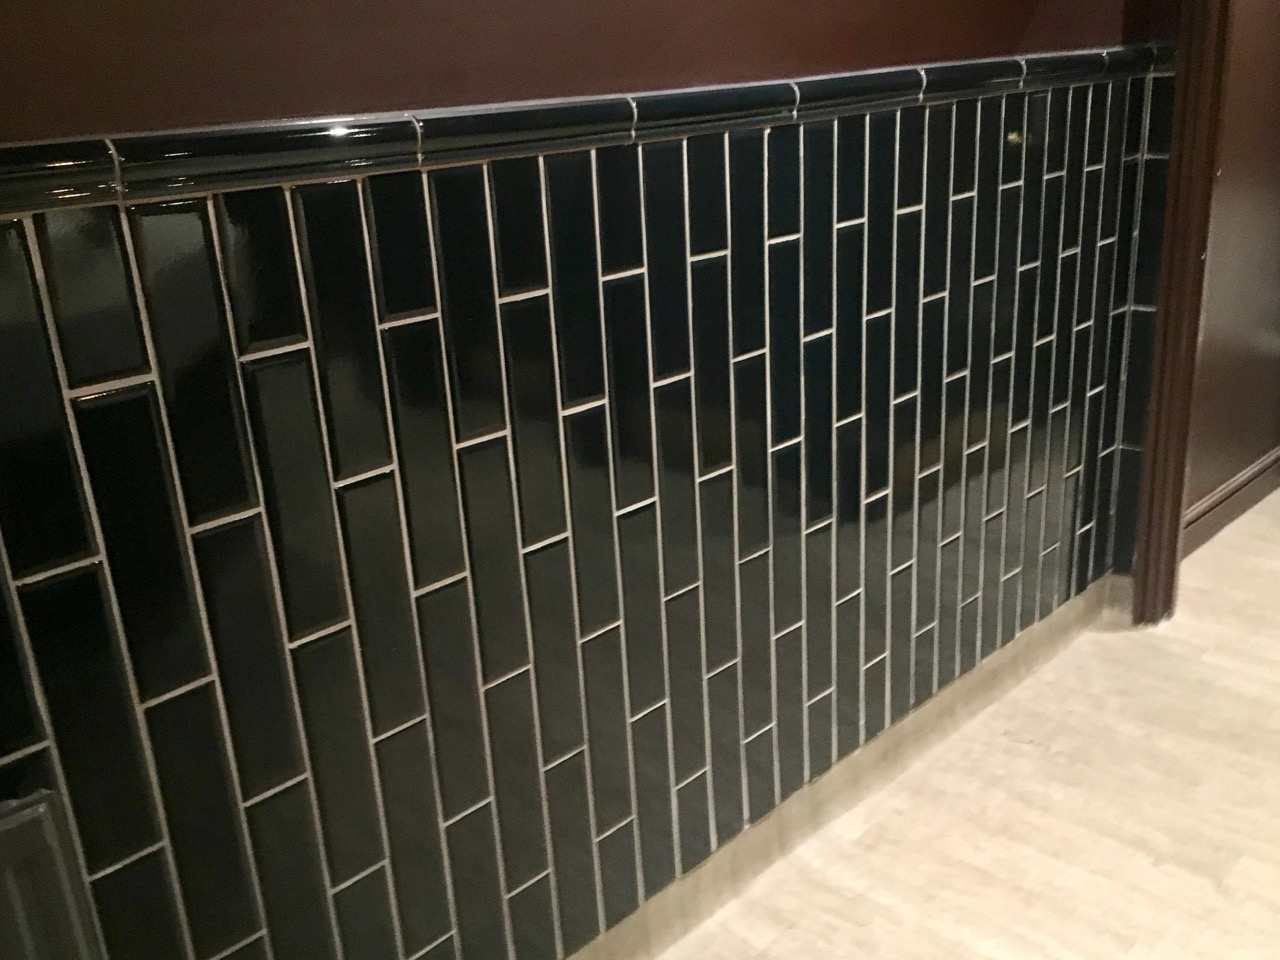 A gloriously dark tiled wall